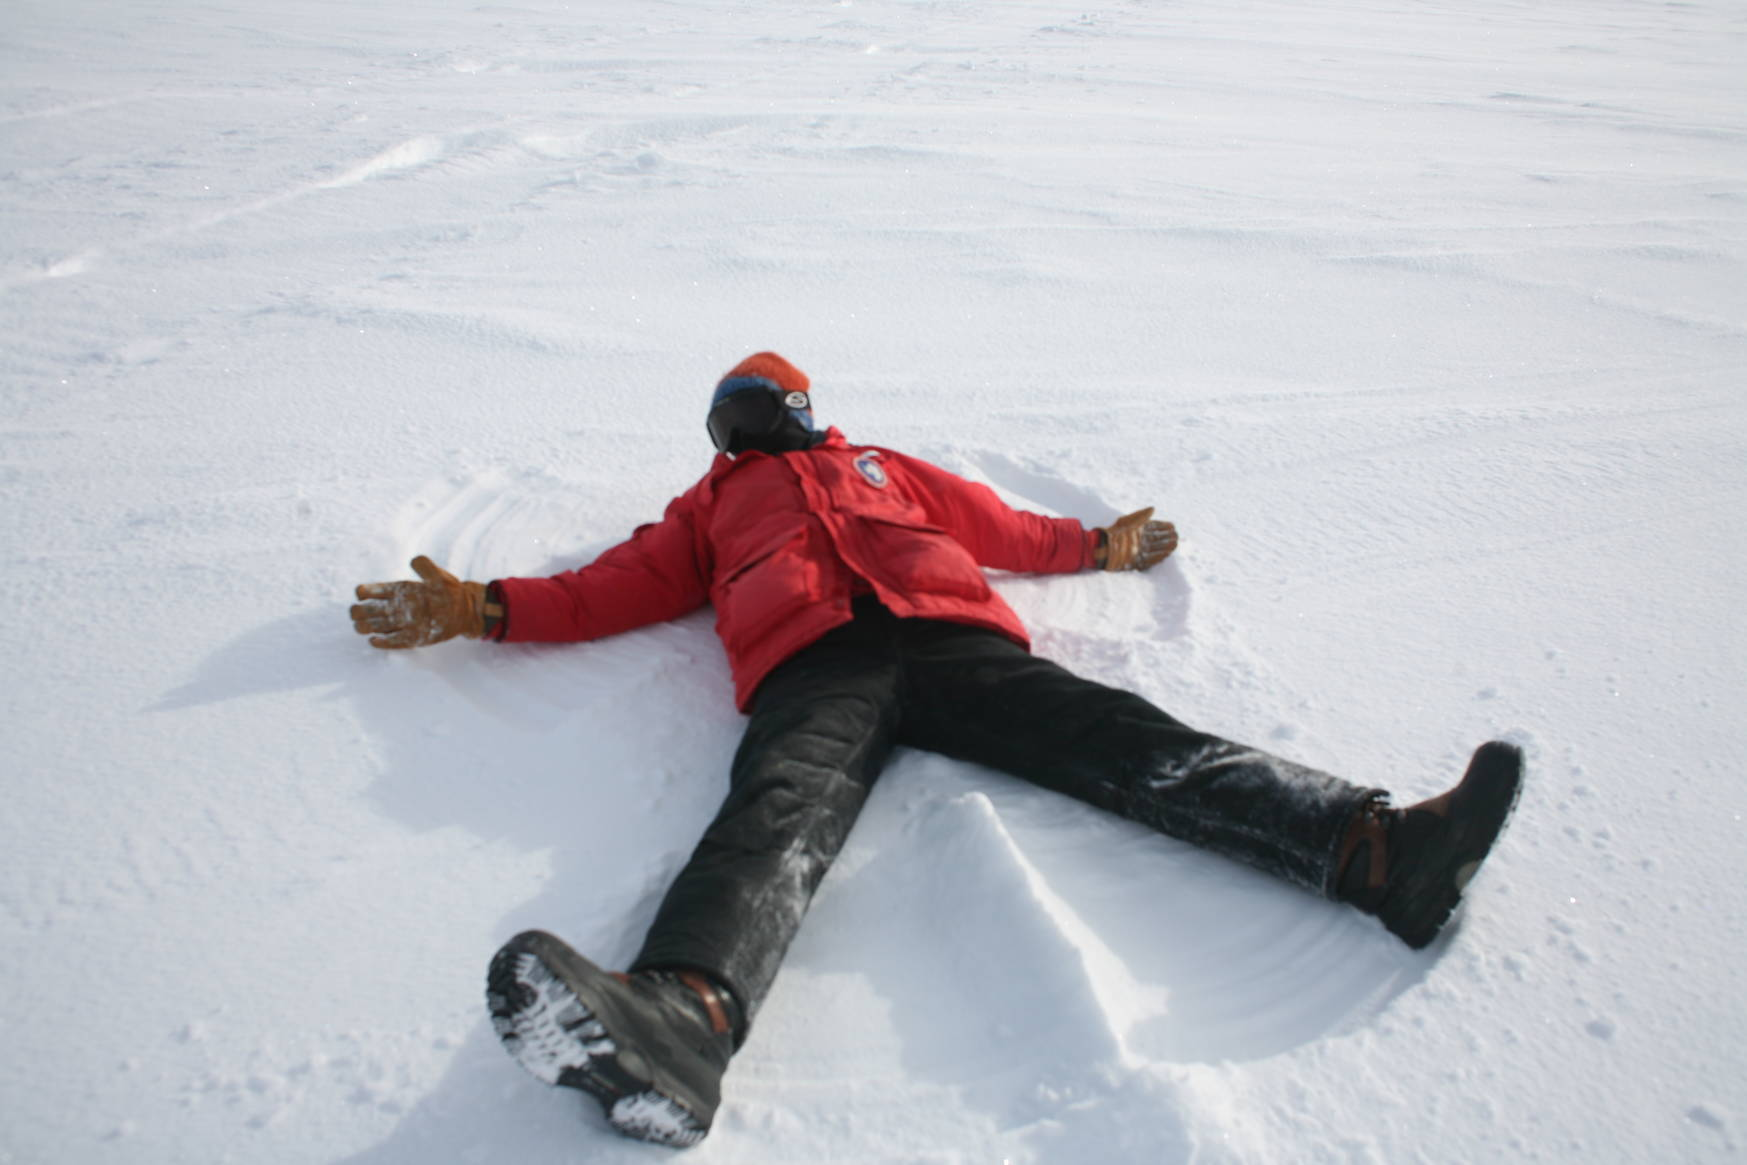 Snow angels at the south pole.